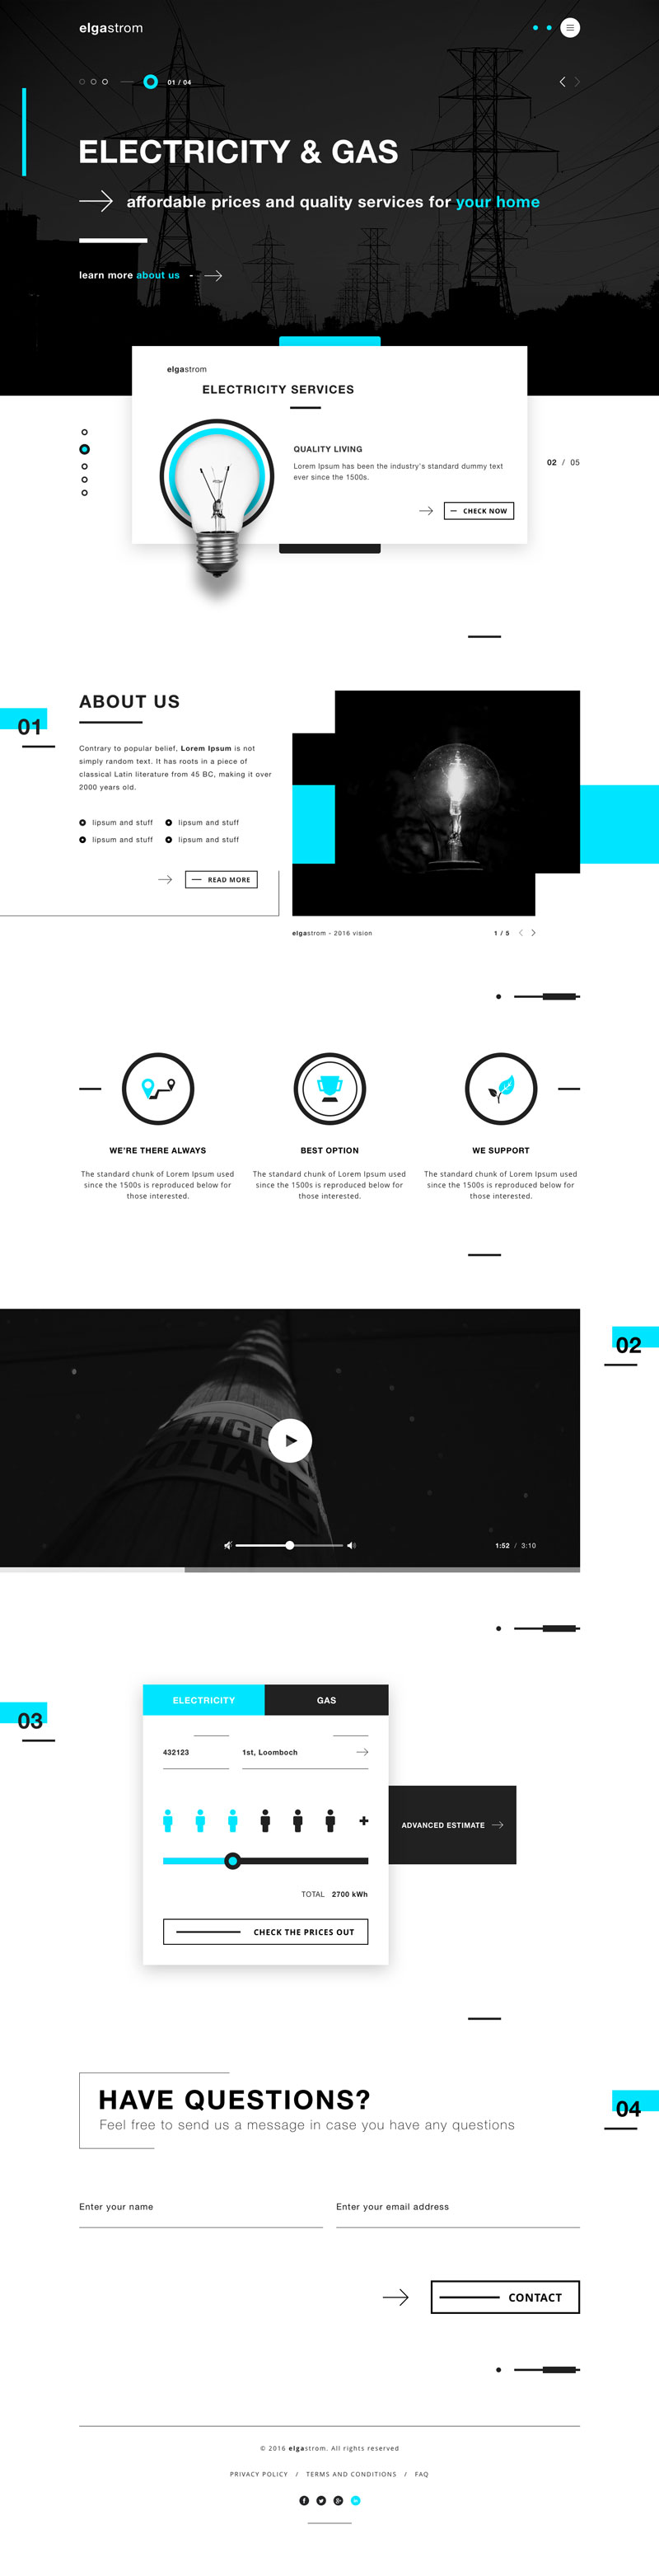 Energy Product Web Design Inspiration